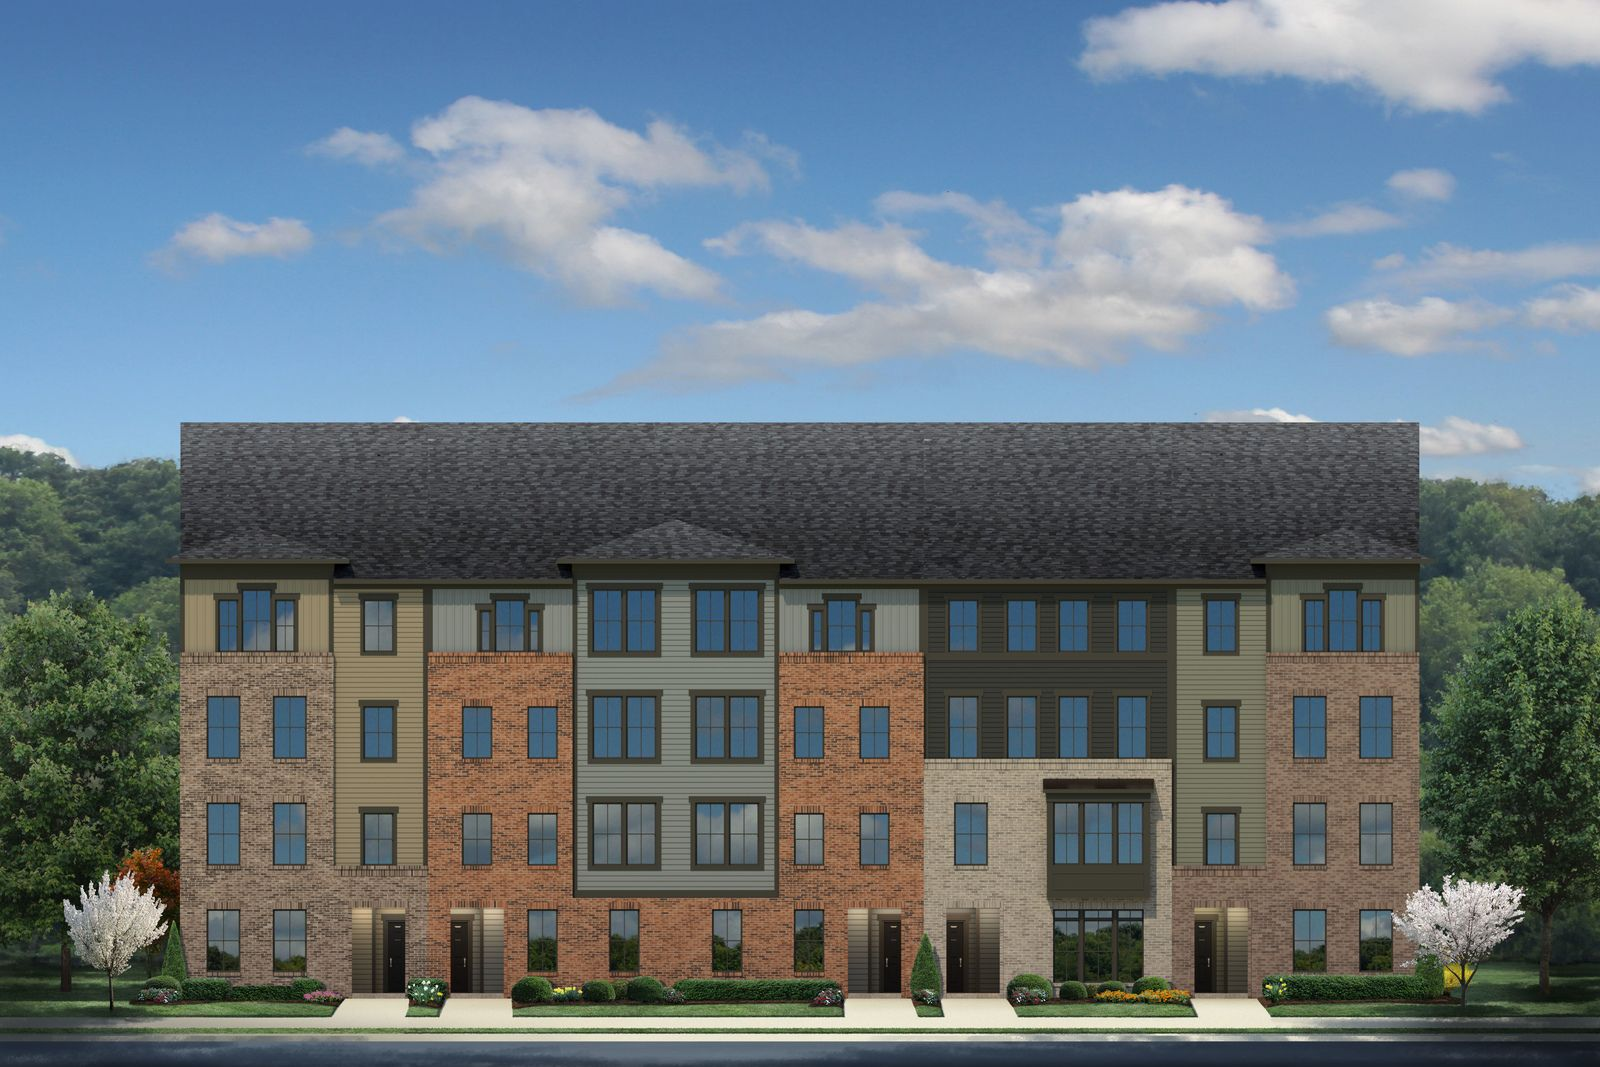 COMING SPRING 2021 TO FAIRFAX COUNTY - FOSTER'S GLEN TOWNHOME-STYLE GARAGE CONDOS FROM THE $500S:Fairfax County's most affordable 2-level, garage condos in a prime location off Rte. 28 near Dulles Airport, the Metro & Reston!Join the VIP List today for insider access.